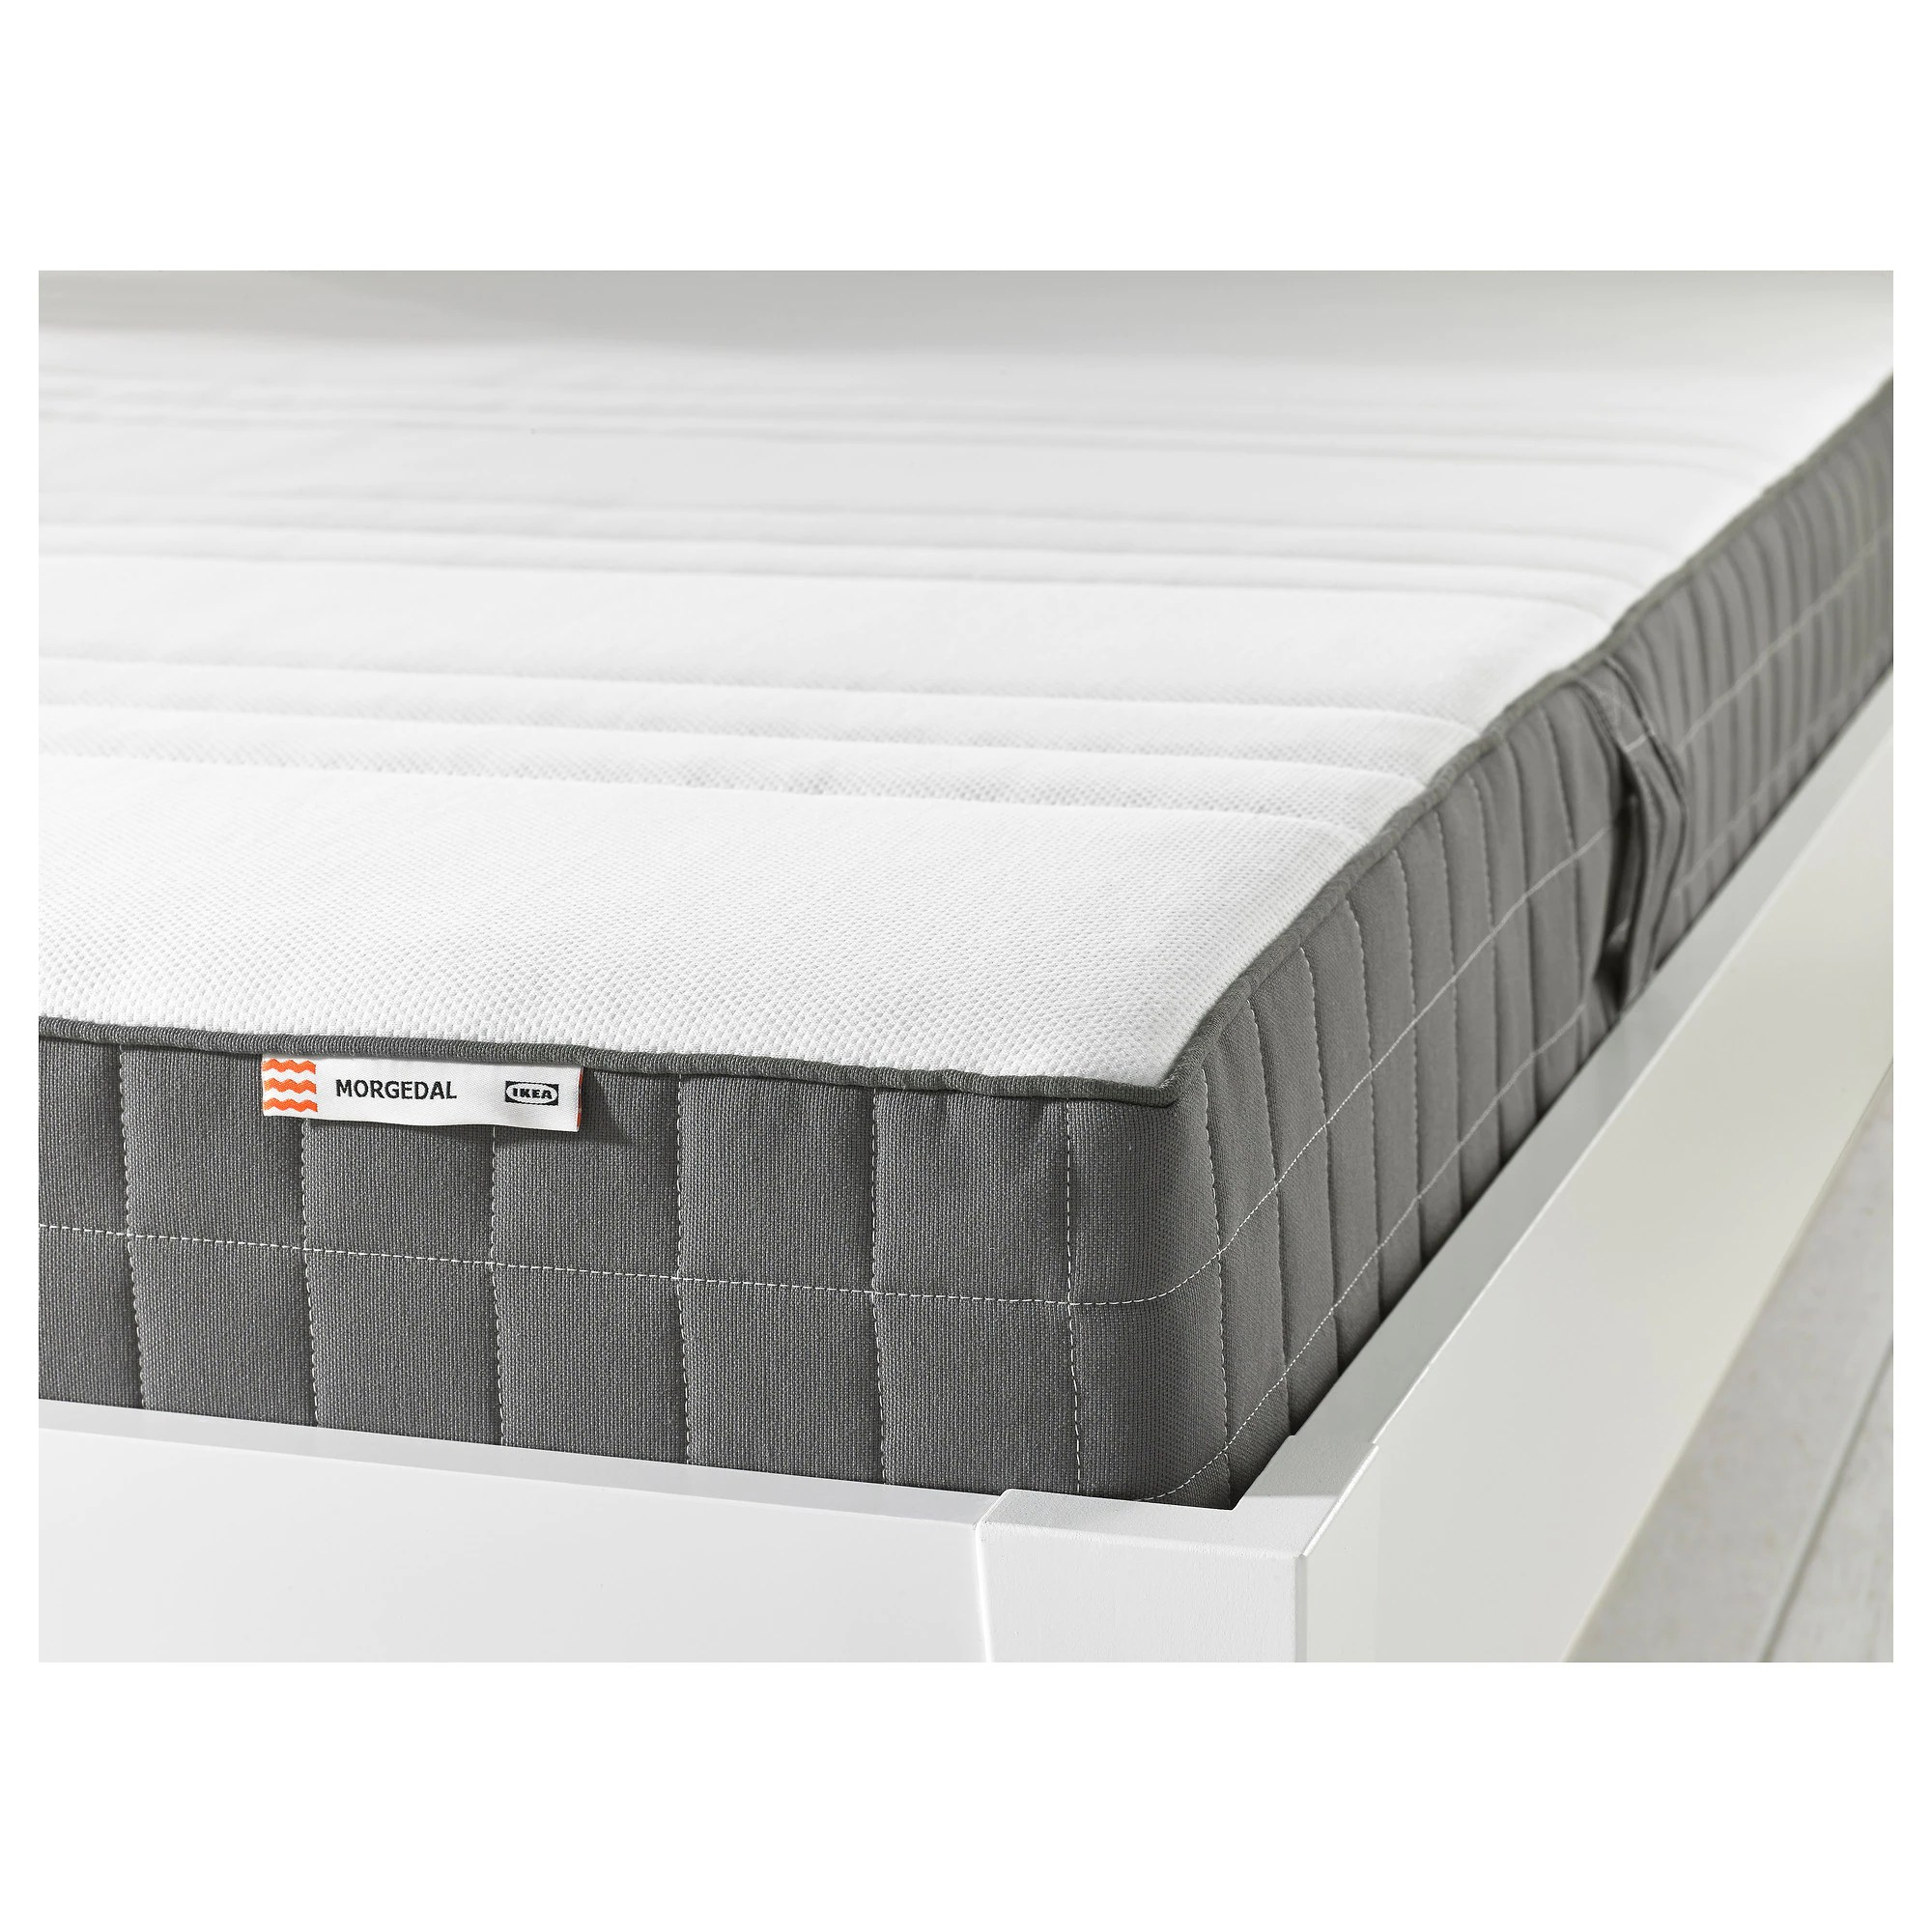 Latex Matratze 140x200 Morgedal Latex Mattress Medium Firm Dark Grey